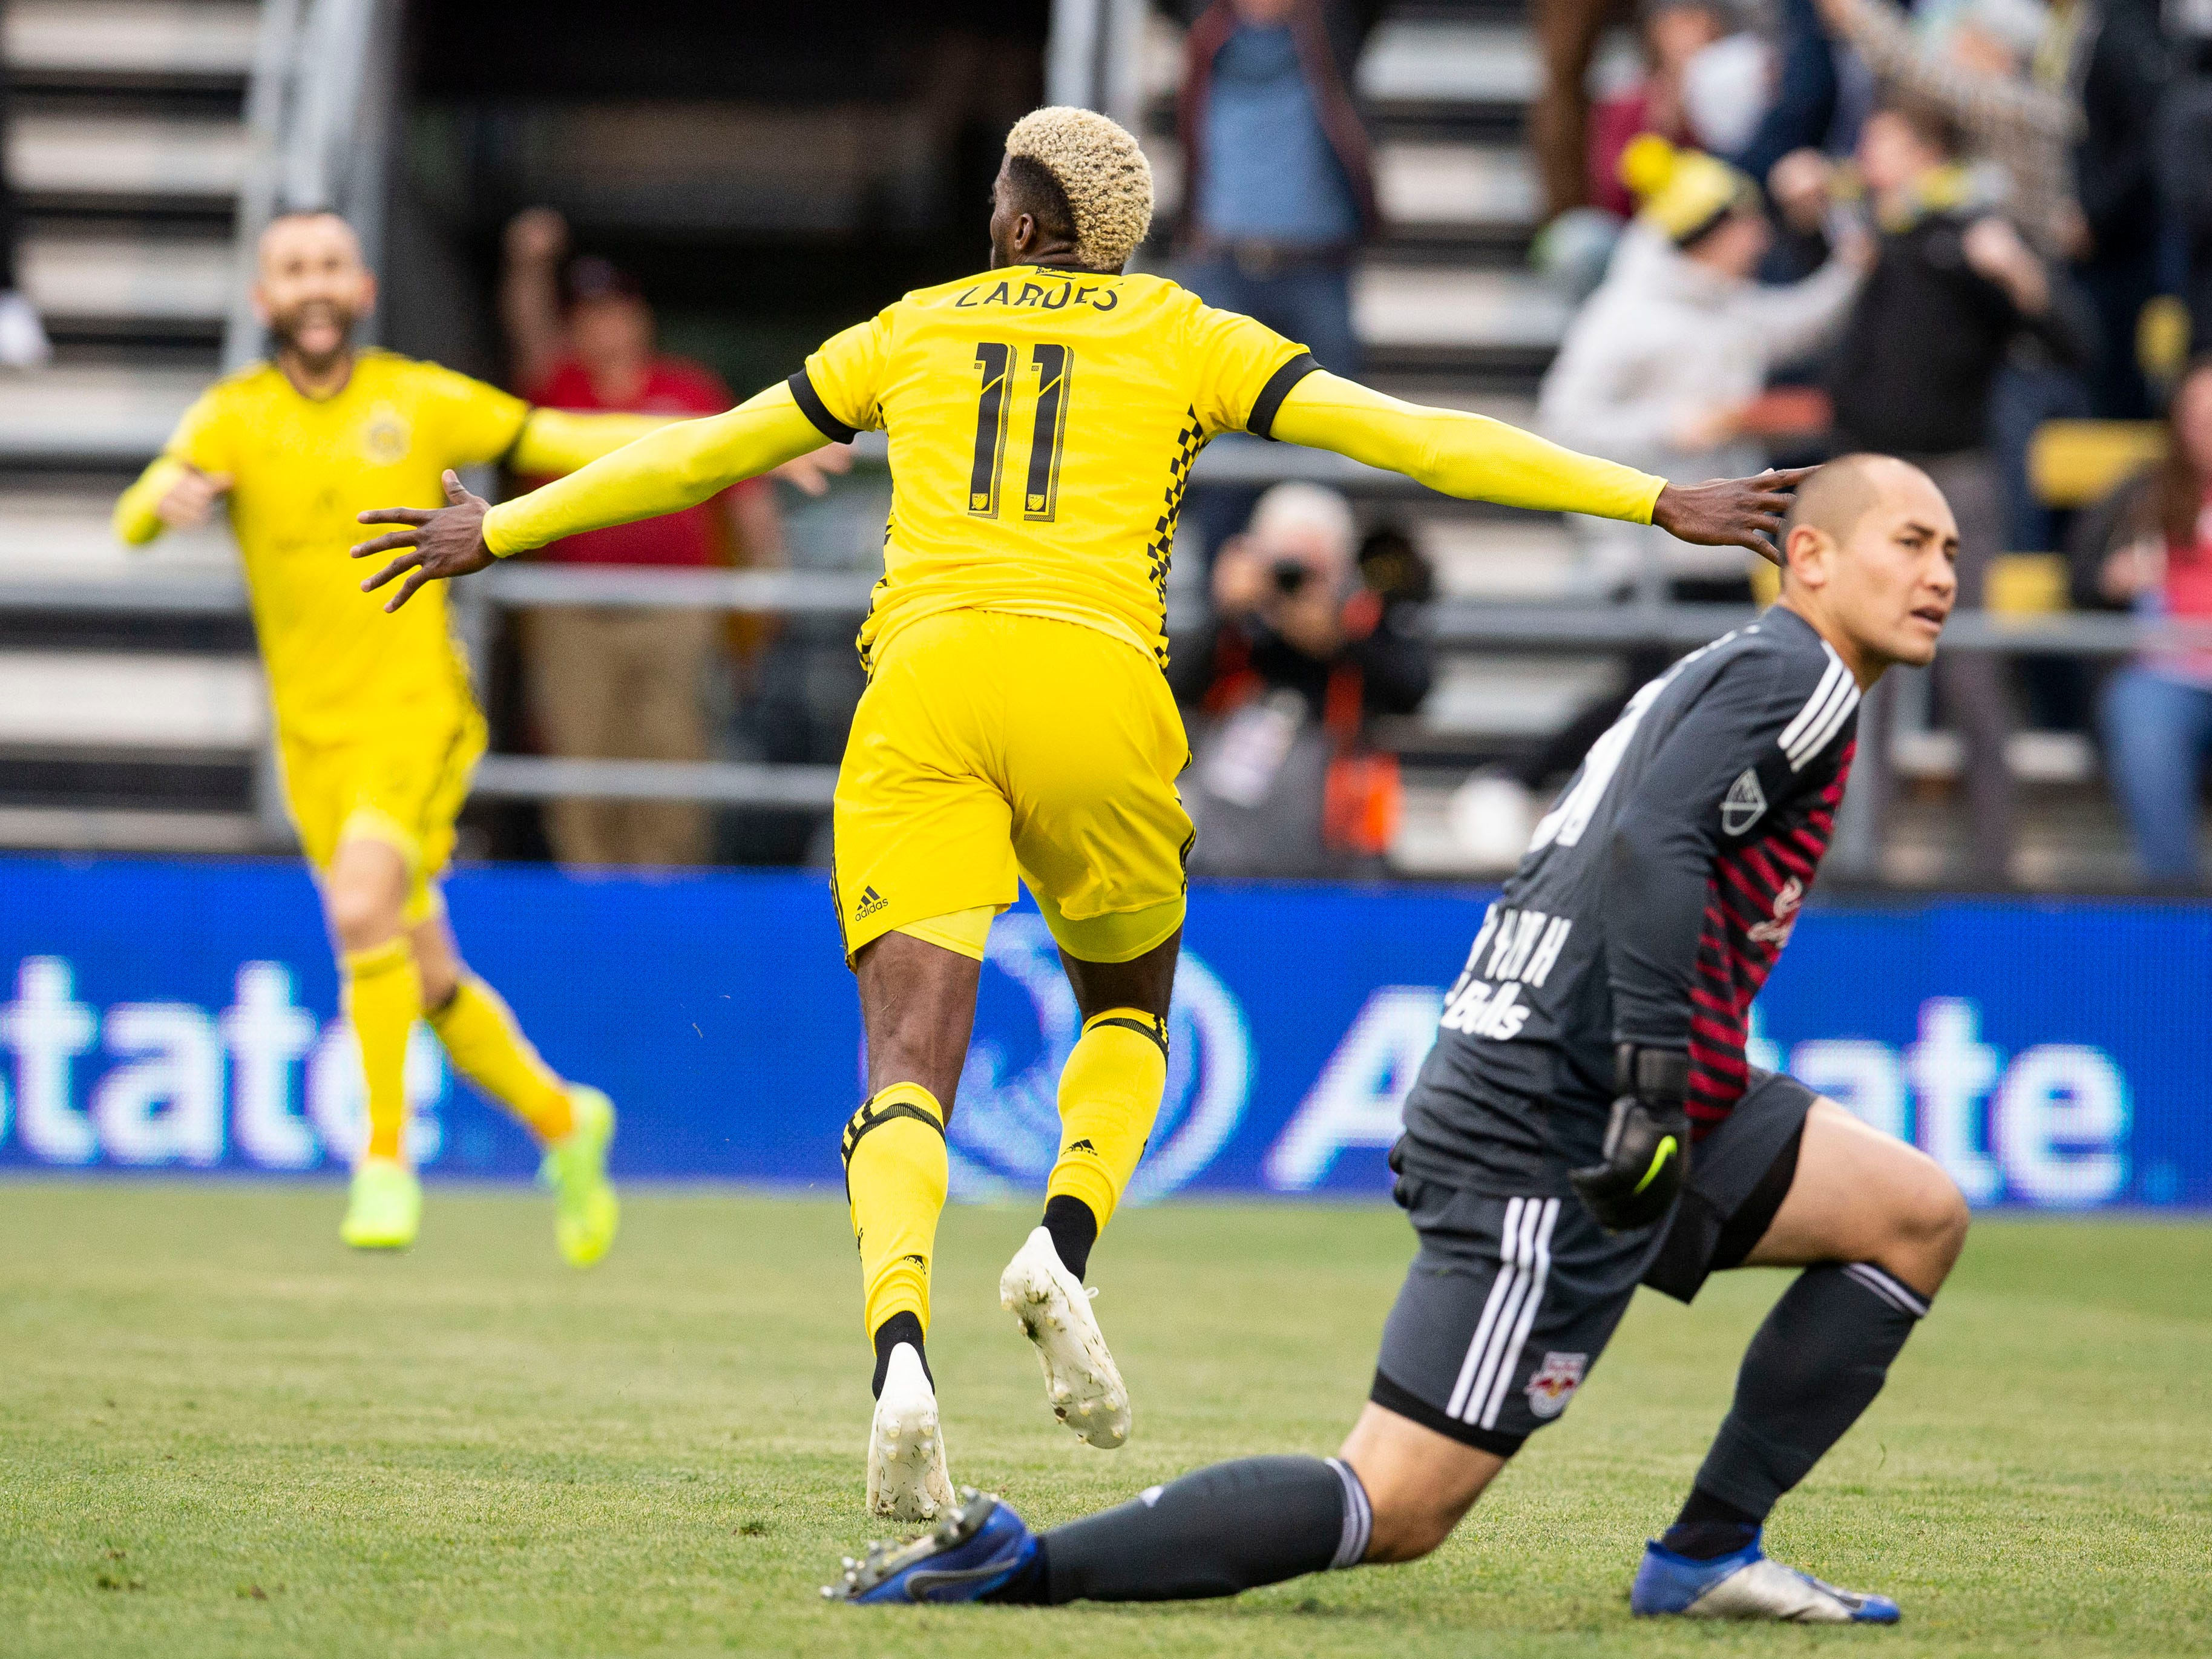 Columbus Crew SC forward Gyasi Zardes (11) celebrates after scoring against New York Red Bulls goalkeeper Luis Robles (31) at Mapfre Stadium.